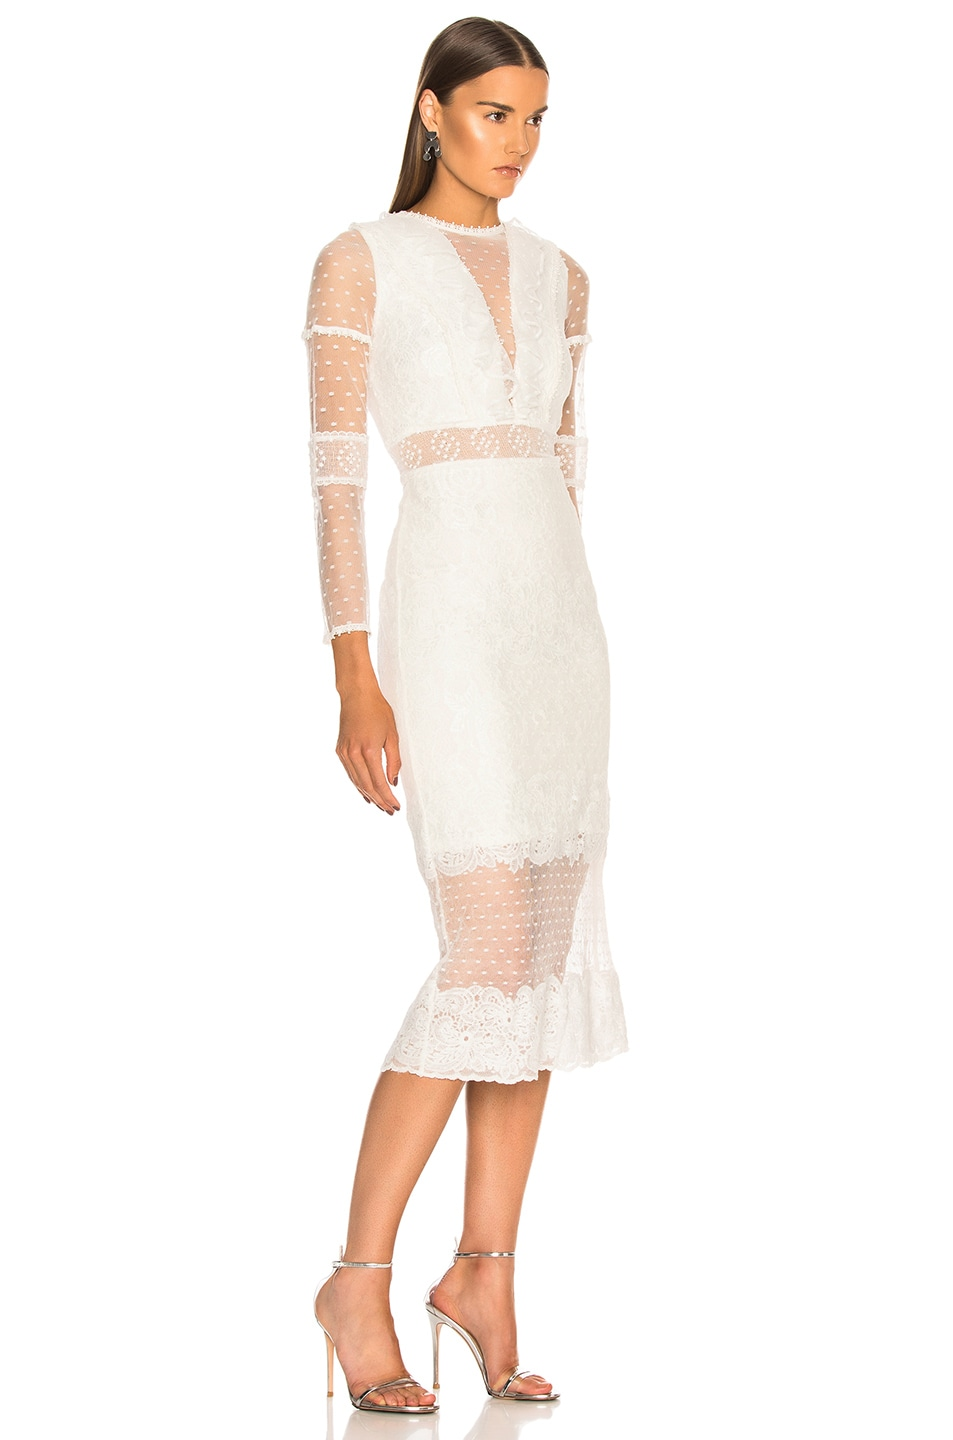 Image 2 of Alexis Elize Dress in White Lace